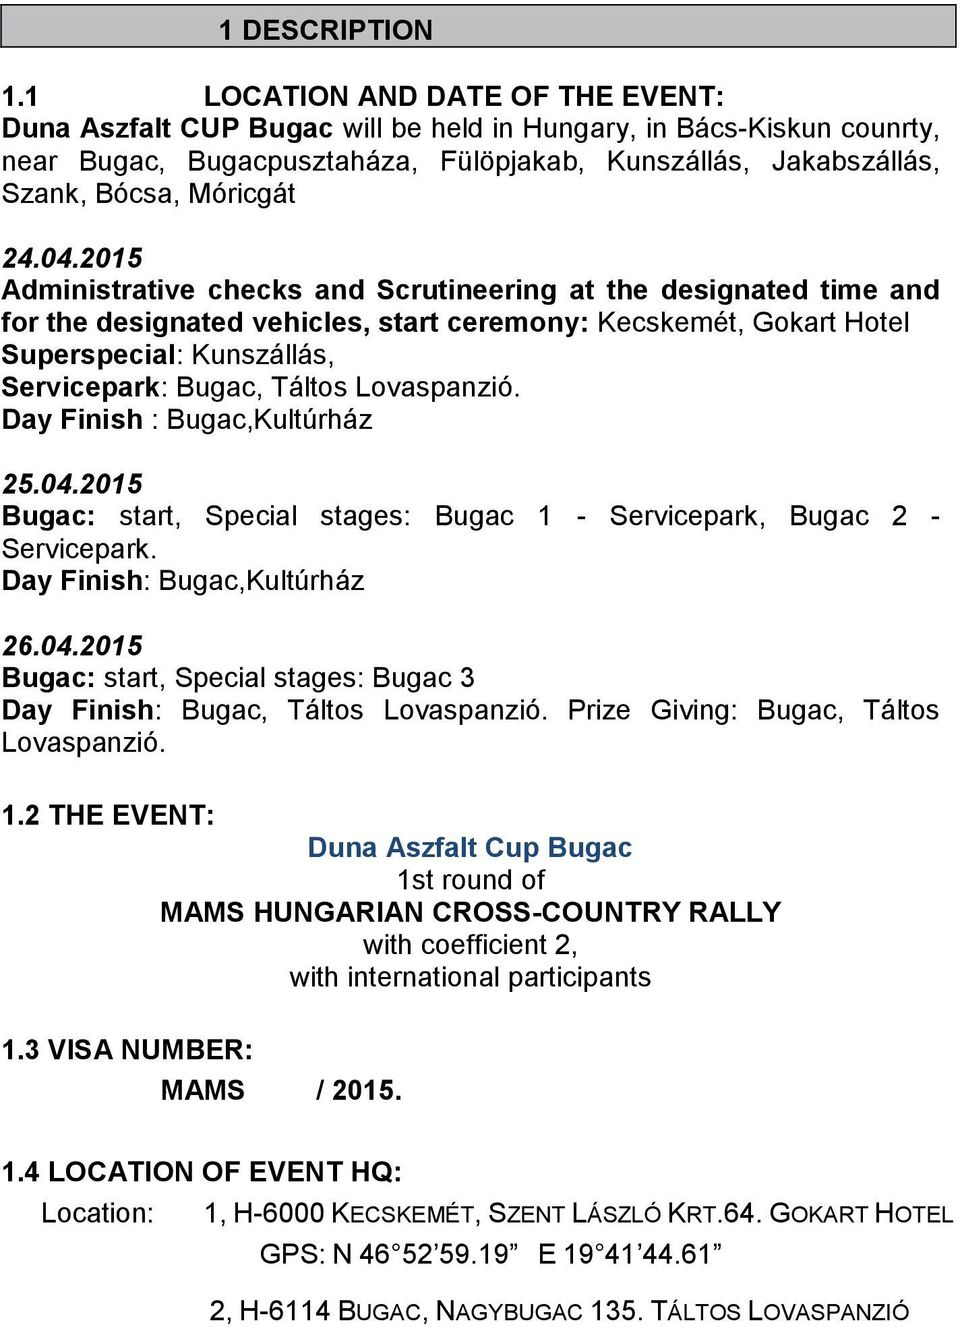 04.2015 Administrative checks and Scrutineering at the designated time and for the designated vehicles, start ceremony: Kecskemét, Gokart Hotel Superspecial: Kunszállás, Servicepark: Bugac, Táltos